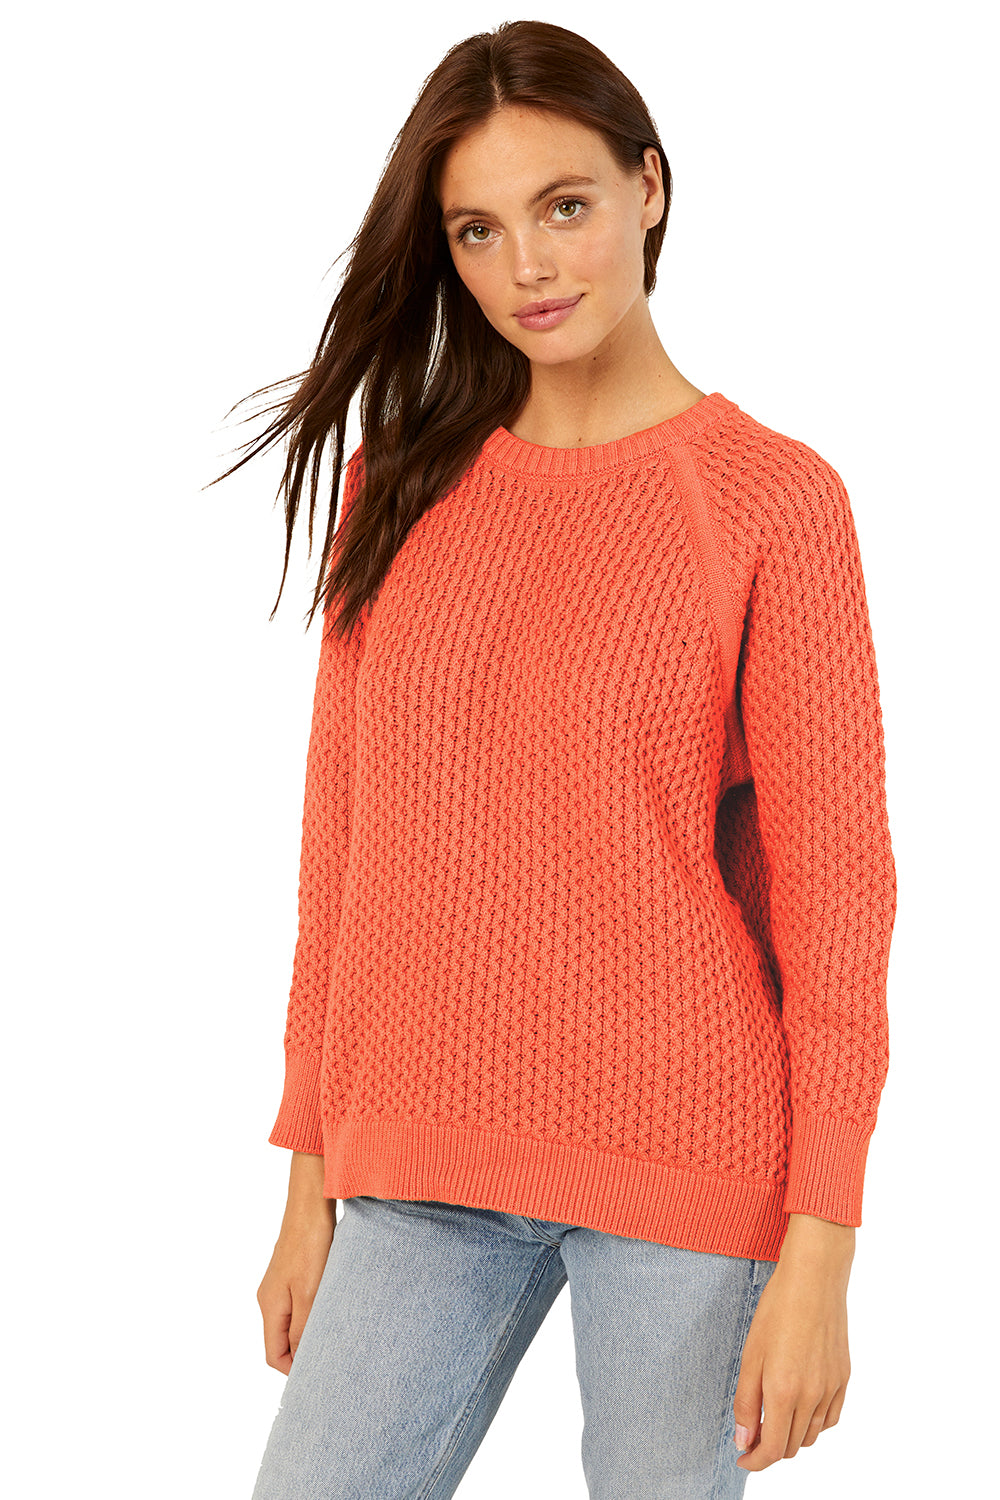 STACIE SWEATER - MISA Los Angeles